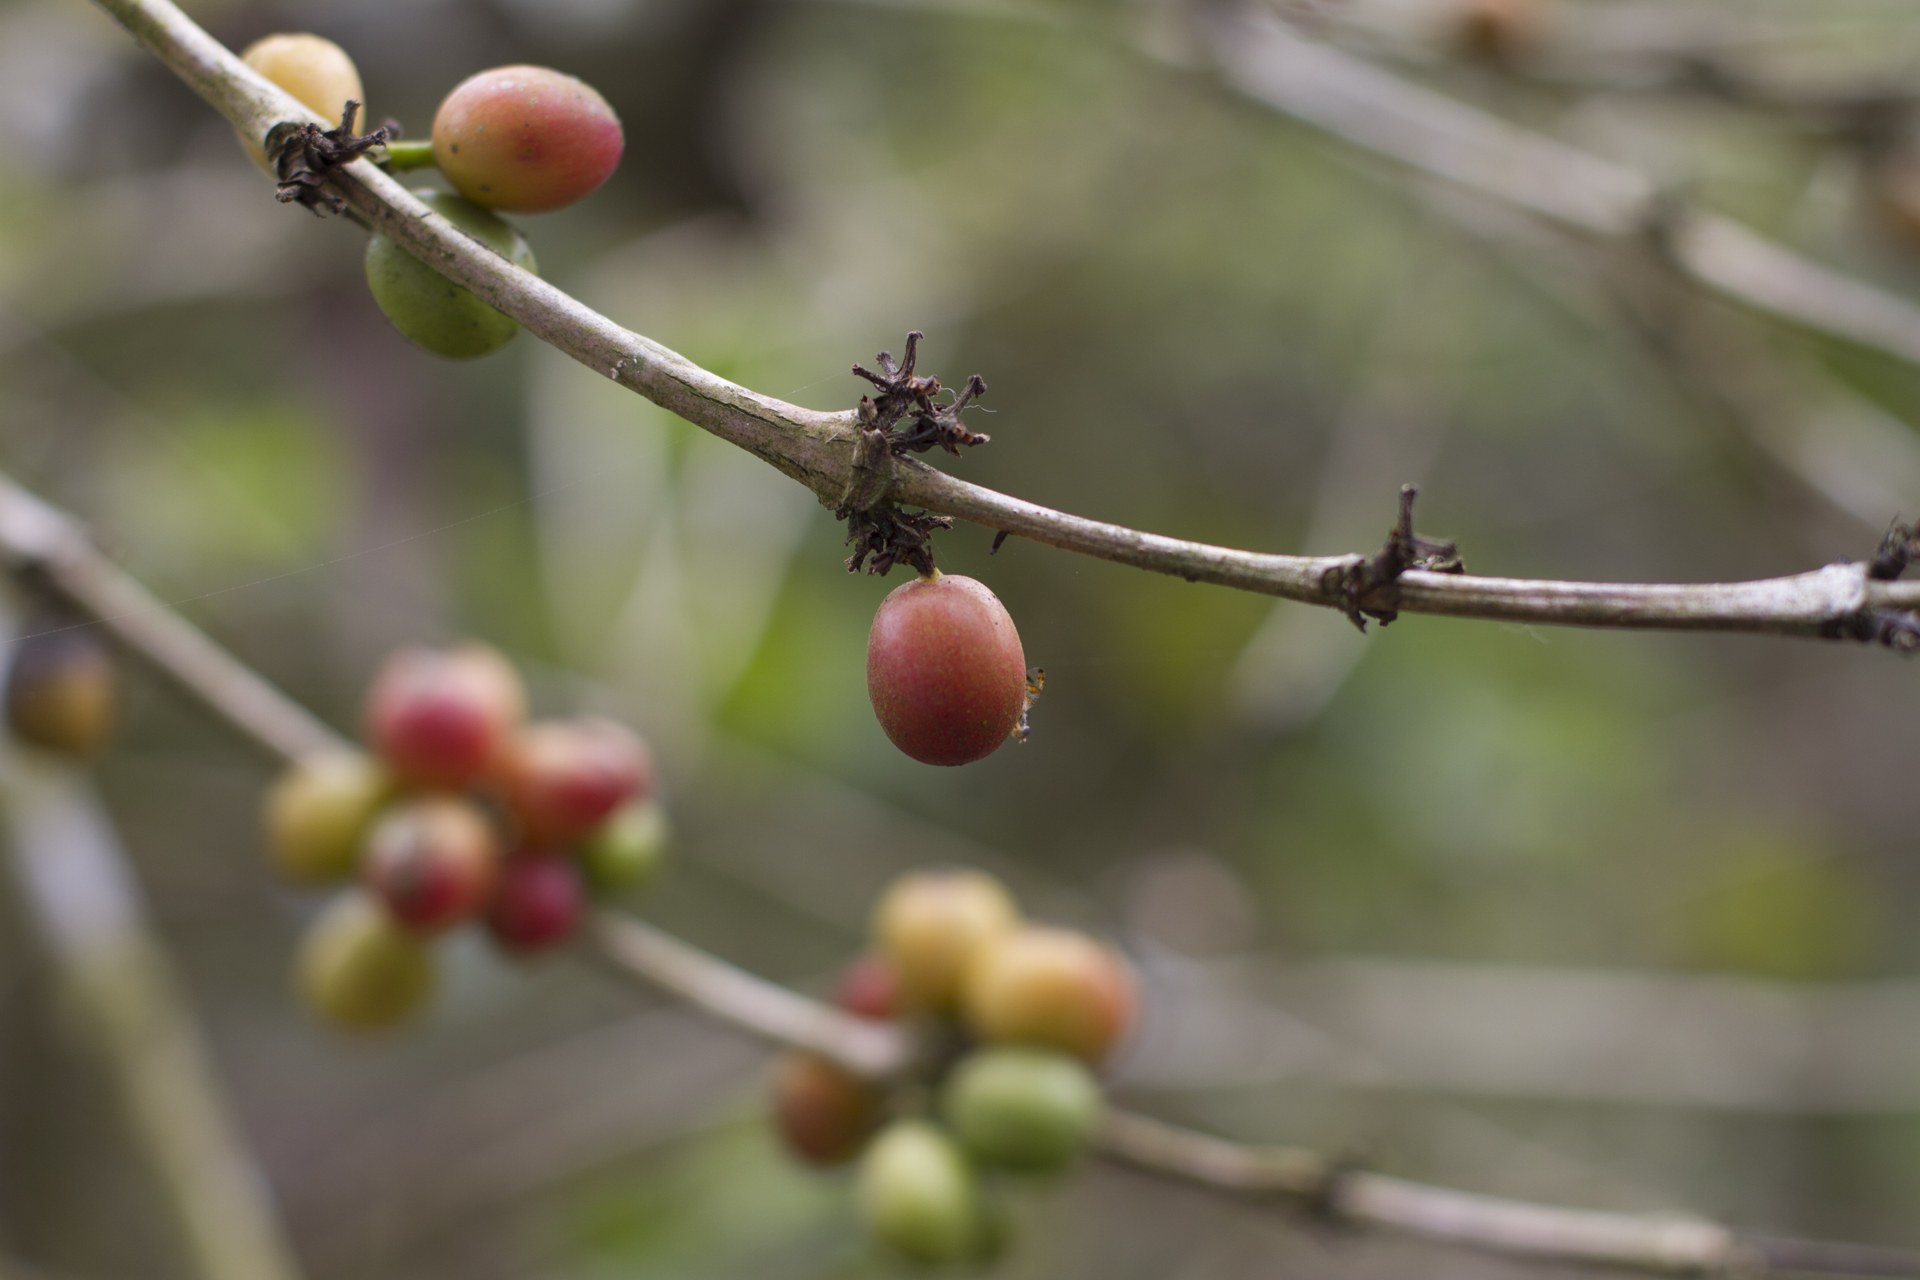 Isveglio - The Secret of Ecuadorian Coffee